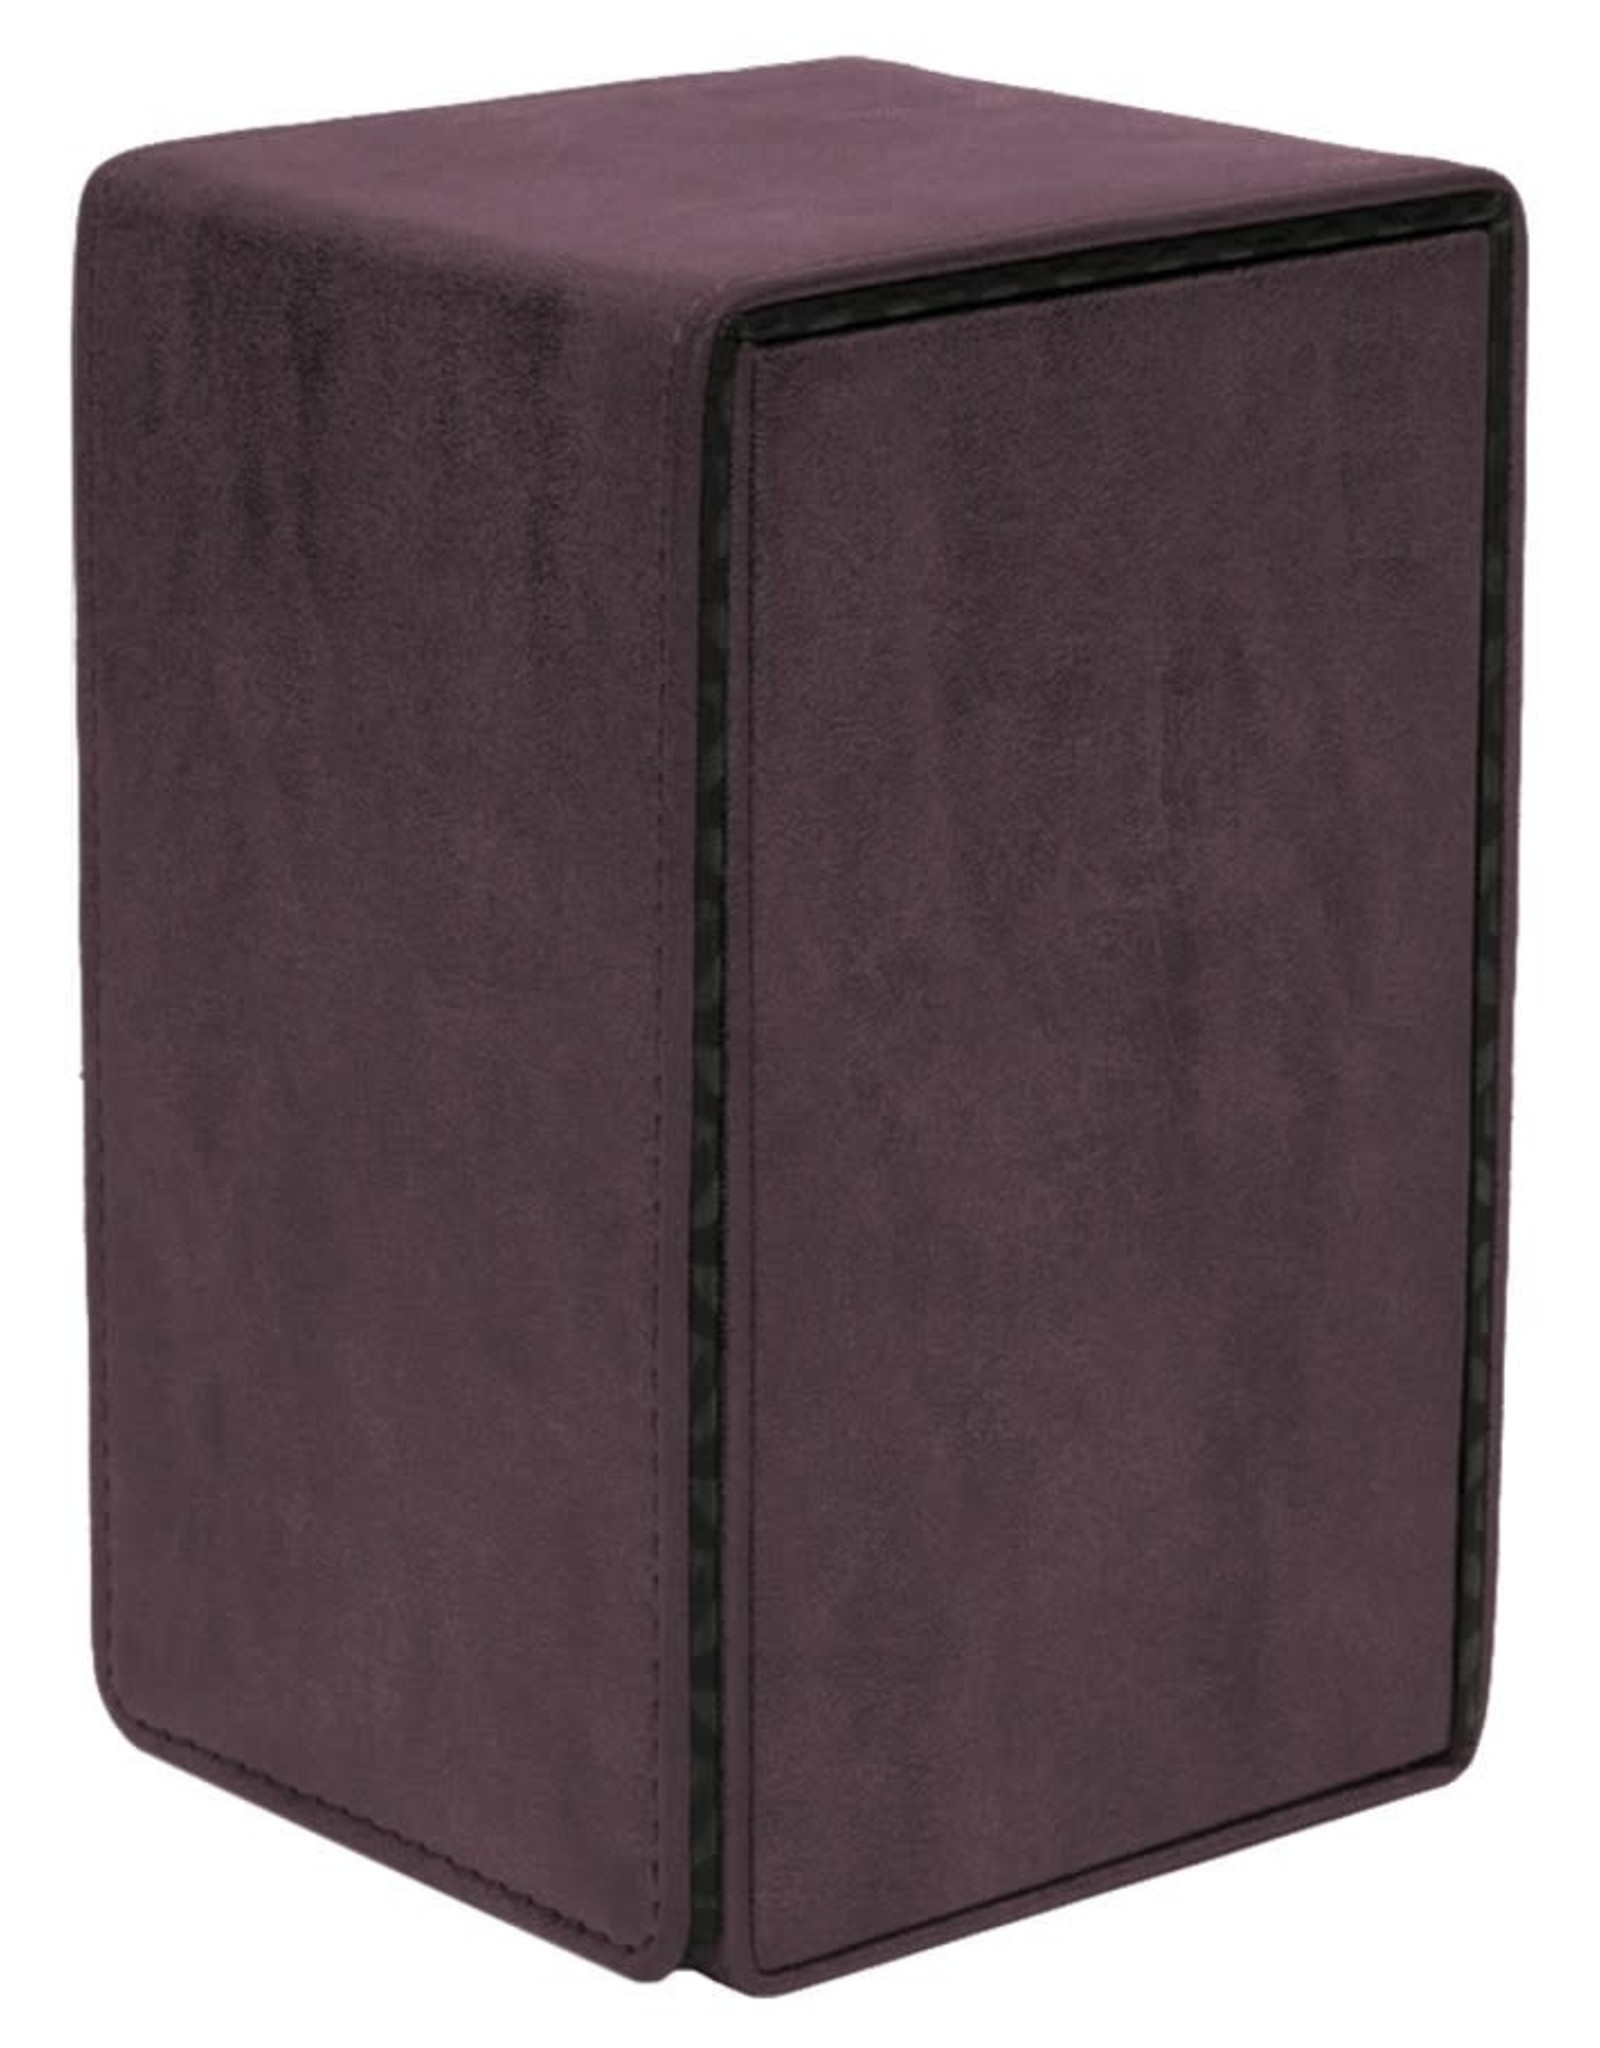 Ultra Pro Alcove Tower Deck Box: Suede Amethyst